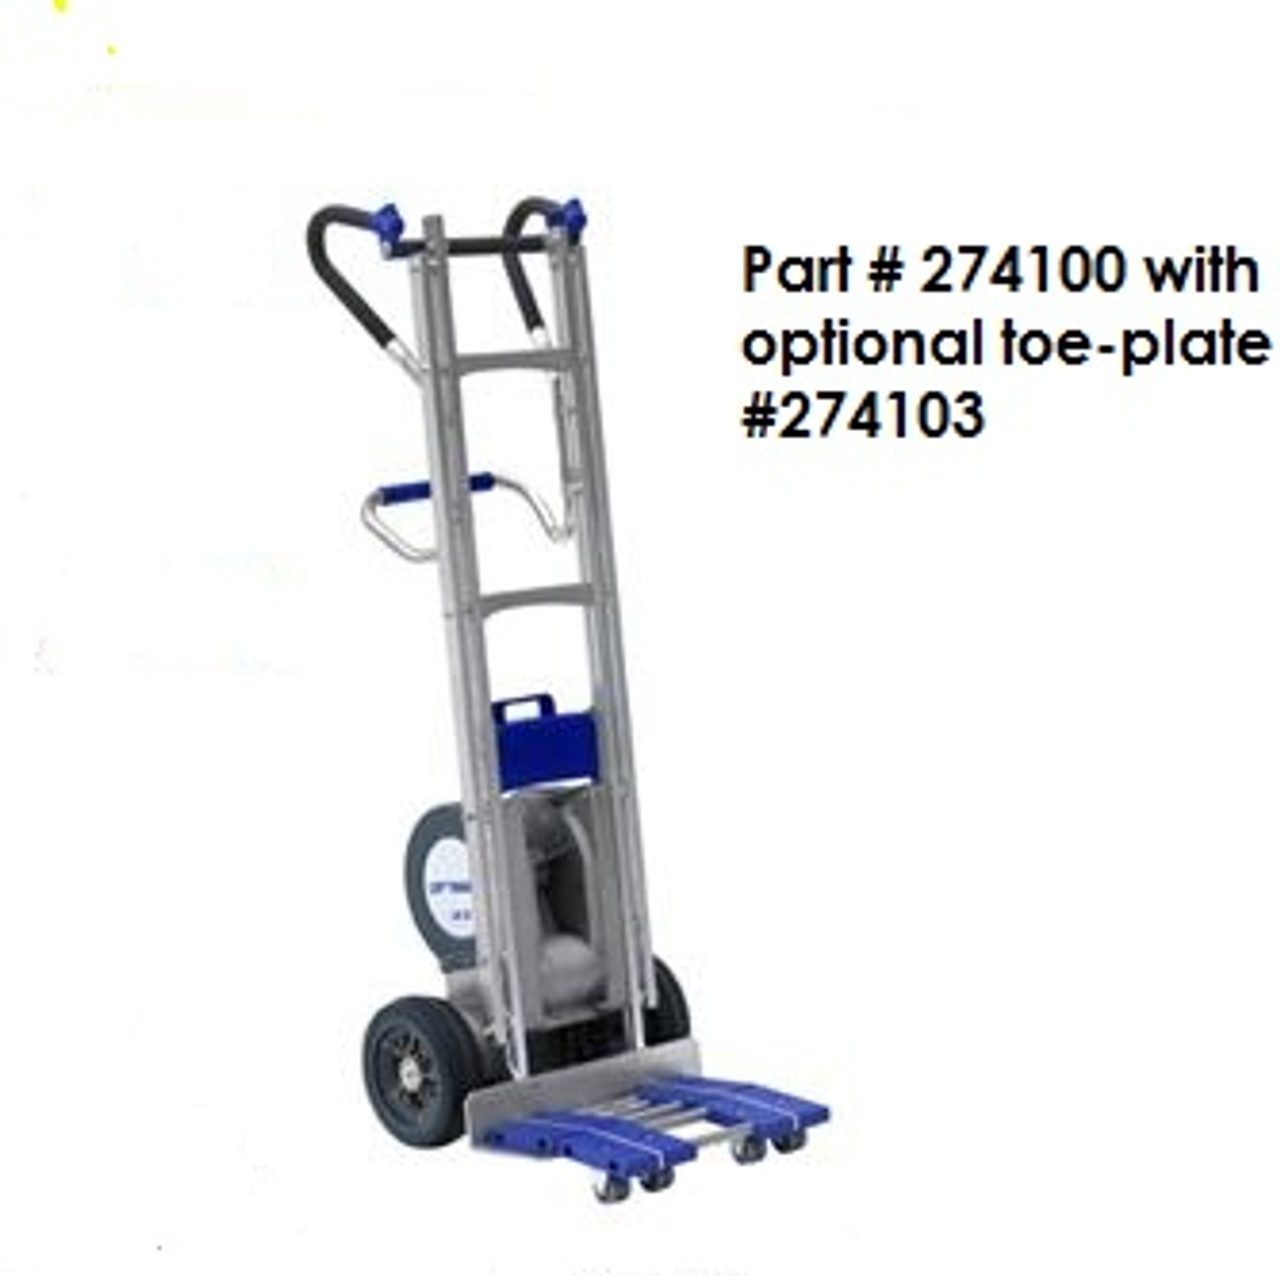 Wesco 274100 Electric Heavy Duty Stair Climber Hand Truck | Heavy Duty Stair Carpet | Stair Runners | Stair Treads Carpet | Stair Risers | Rug Gripper | Carpet Protector